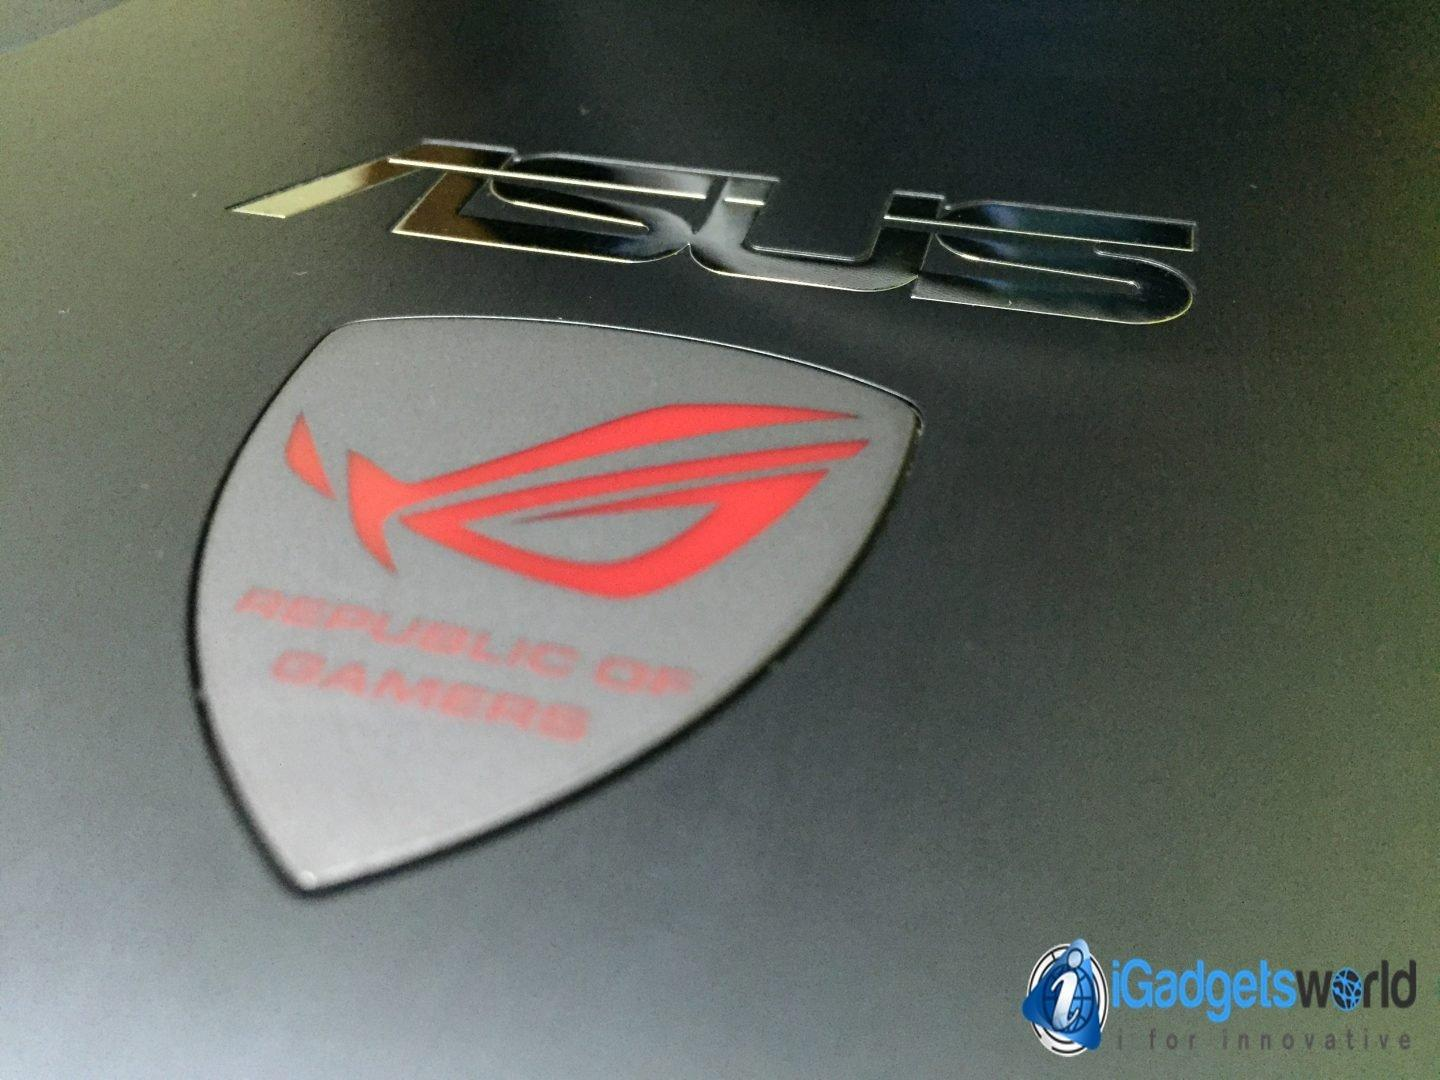 Asus ROG G751J Review: A Slightly Overpriced Ultra High-End Gaming Laptop - 13